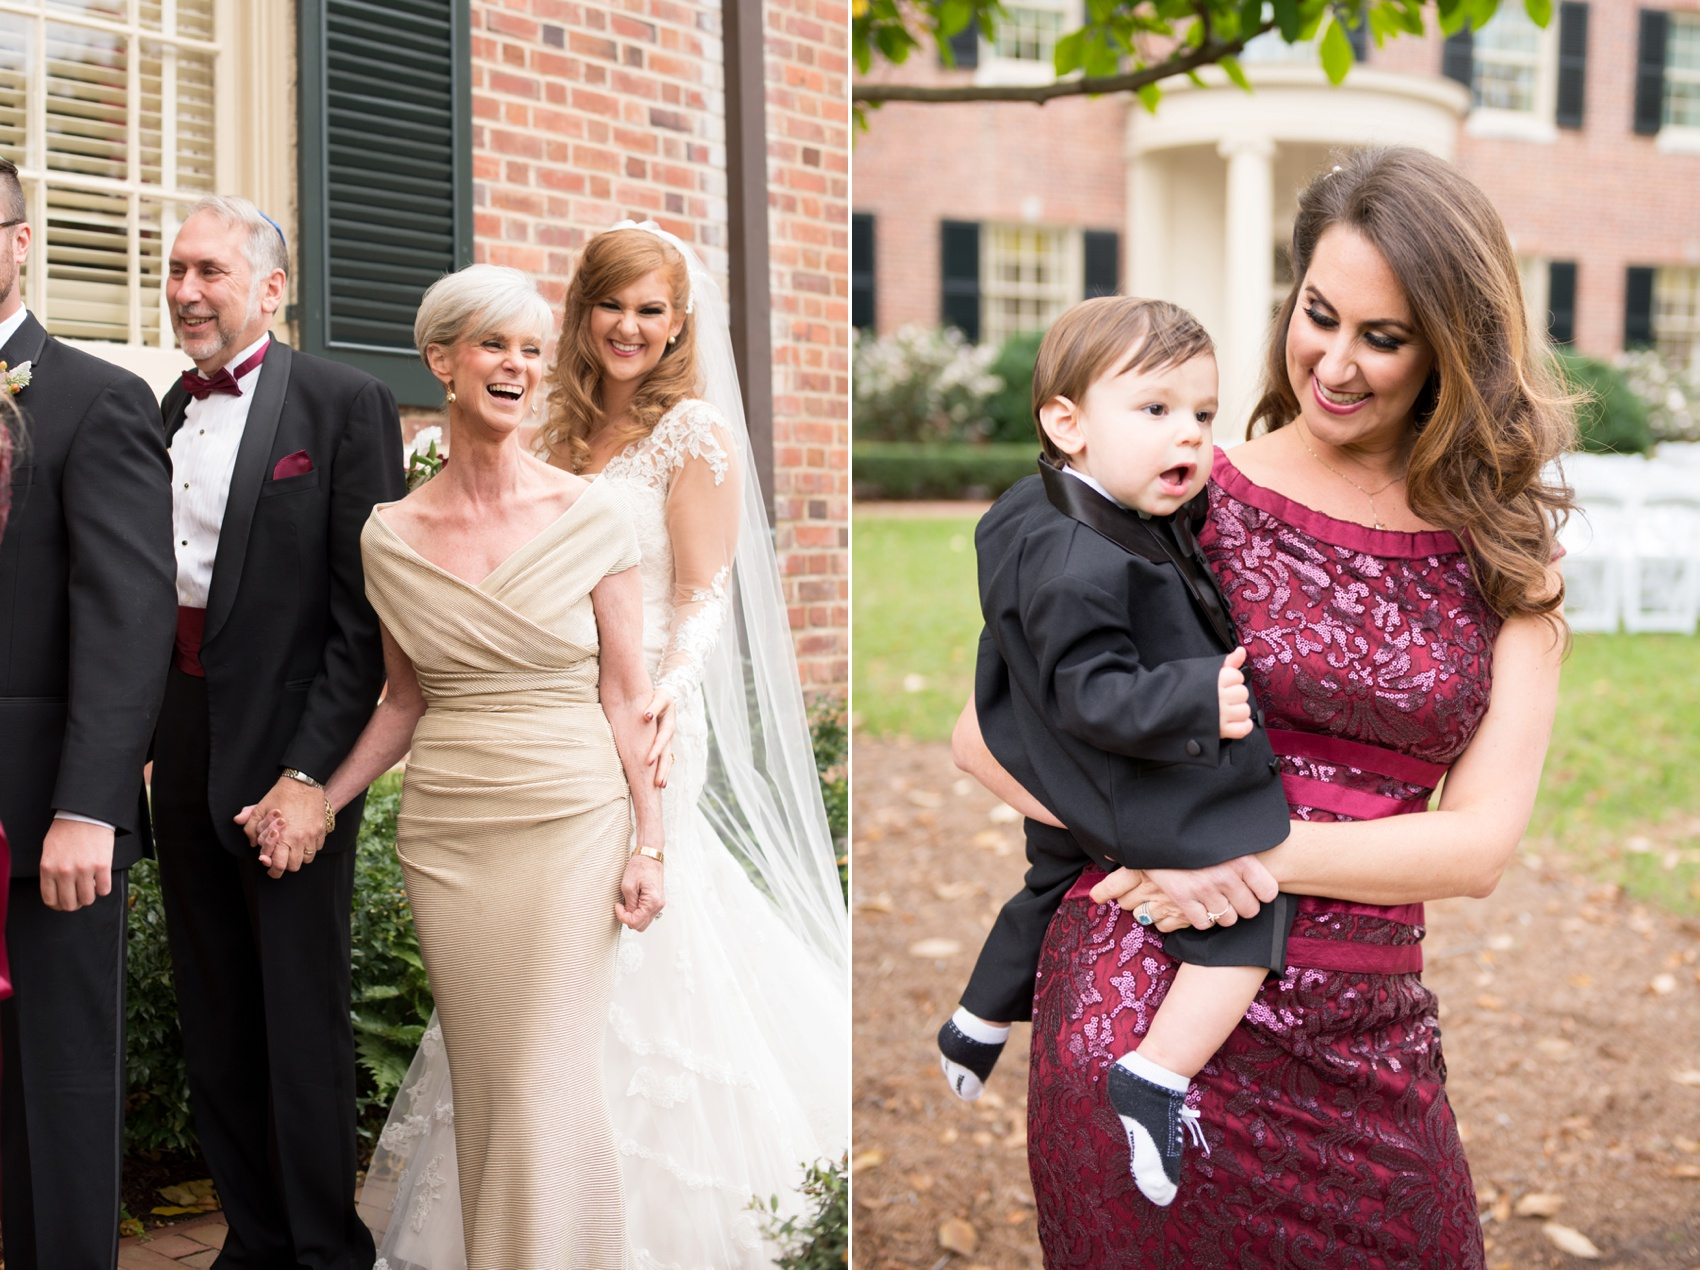 The Carolina Inn wedding photos by Mikkel Paige Photography, Raleigh wedding photographer. Planning by A Swanky Affair and flowers by Tre Bella for a fall pumpkin Halloween inspired outdoor ceremony.